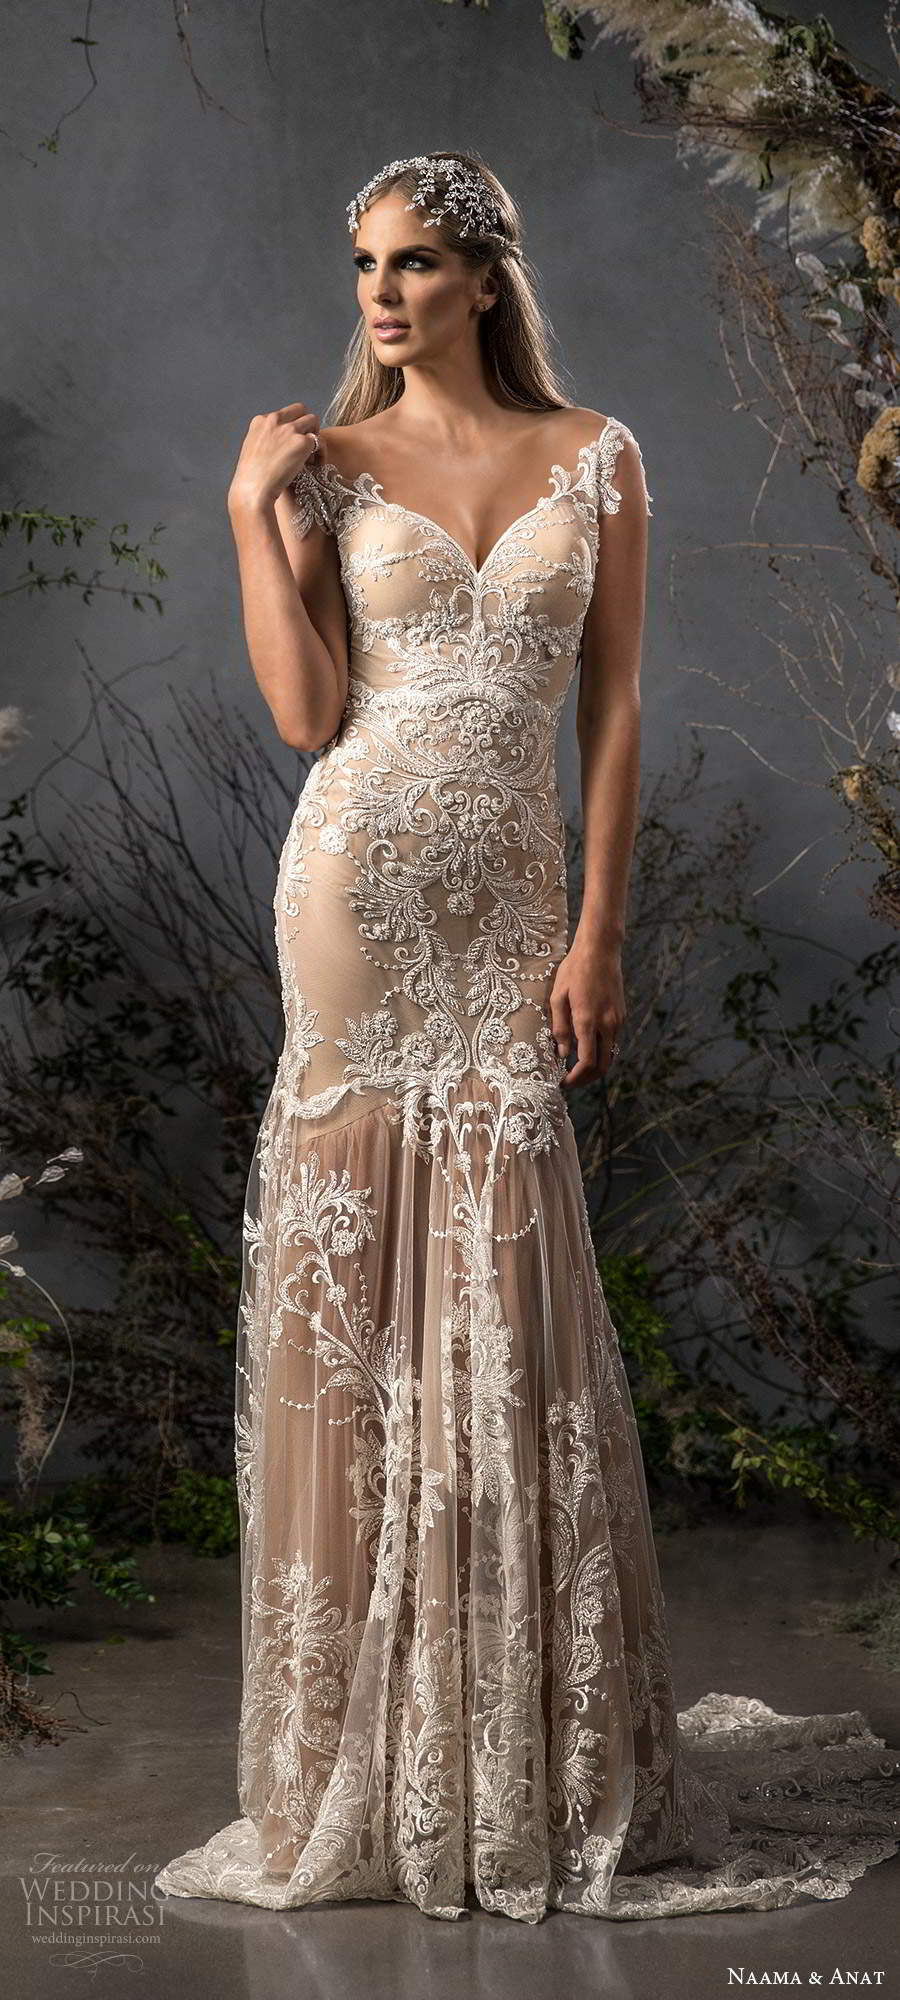 naama anat fall 2020 bridal illusion cap sleeves sweetheart neckline fully embellished fit flare a line wedding dress chapel train champagne (4) mv